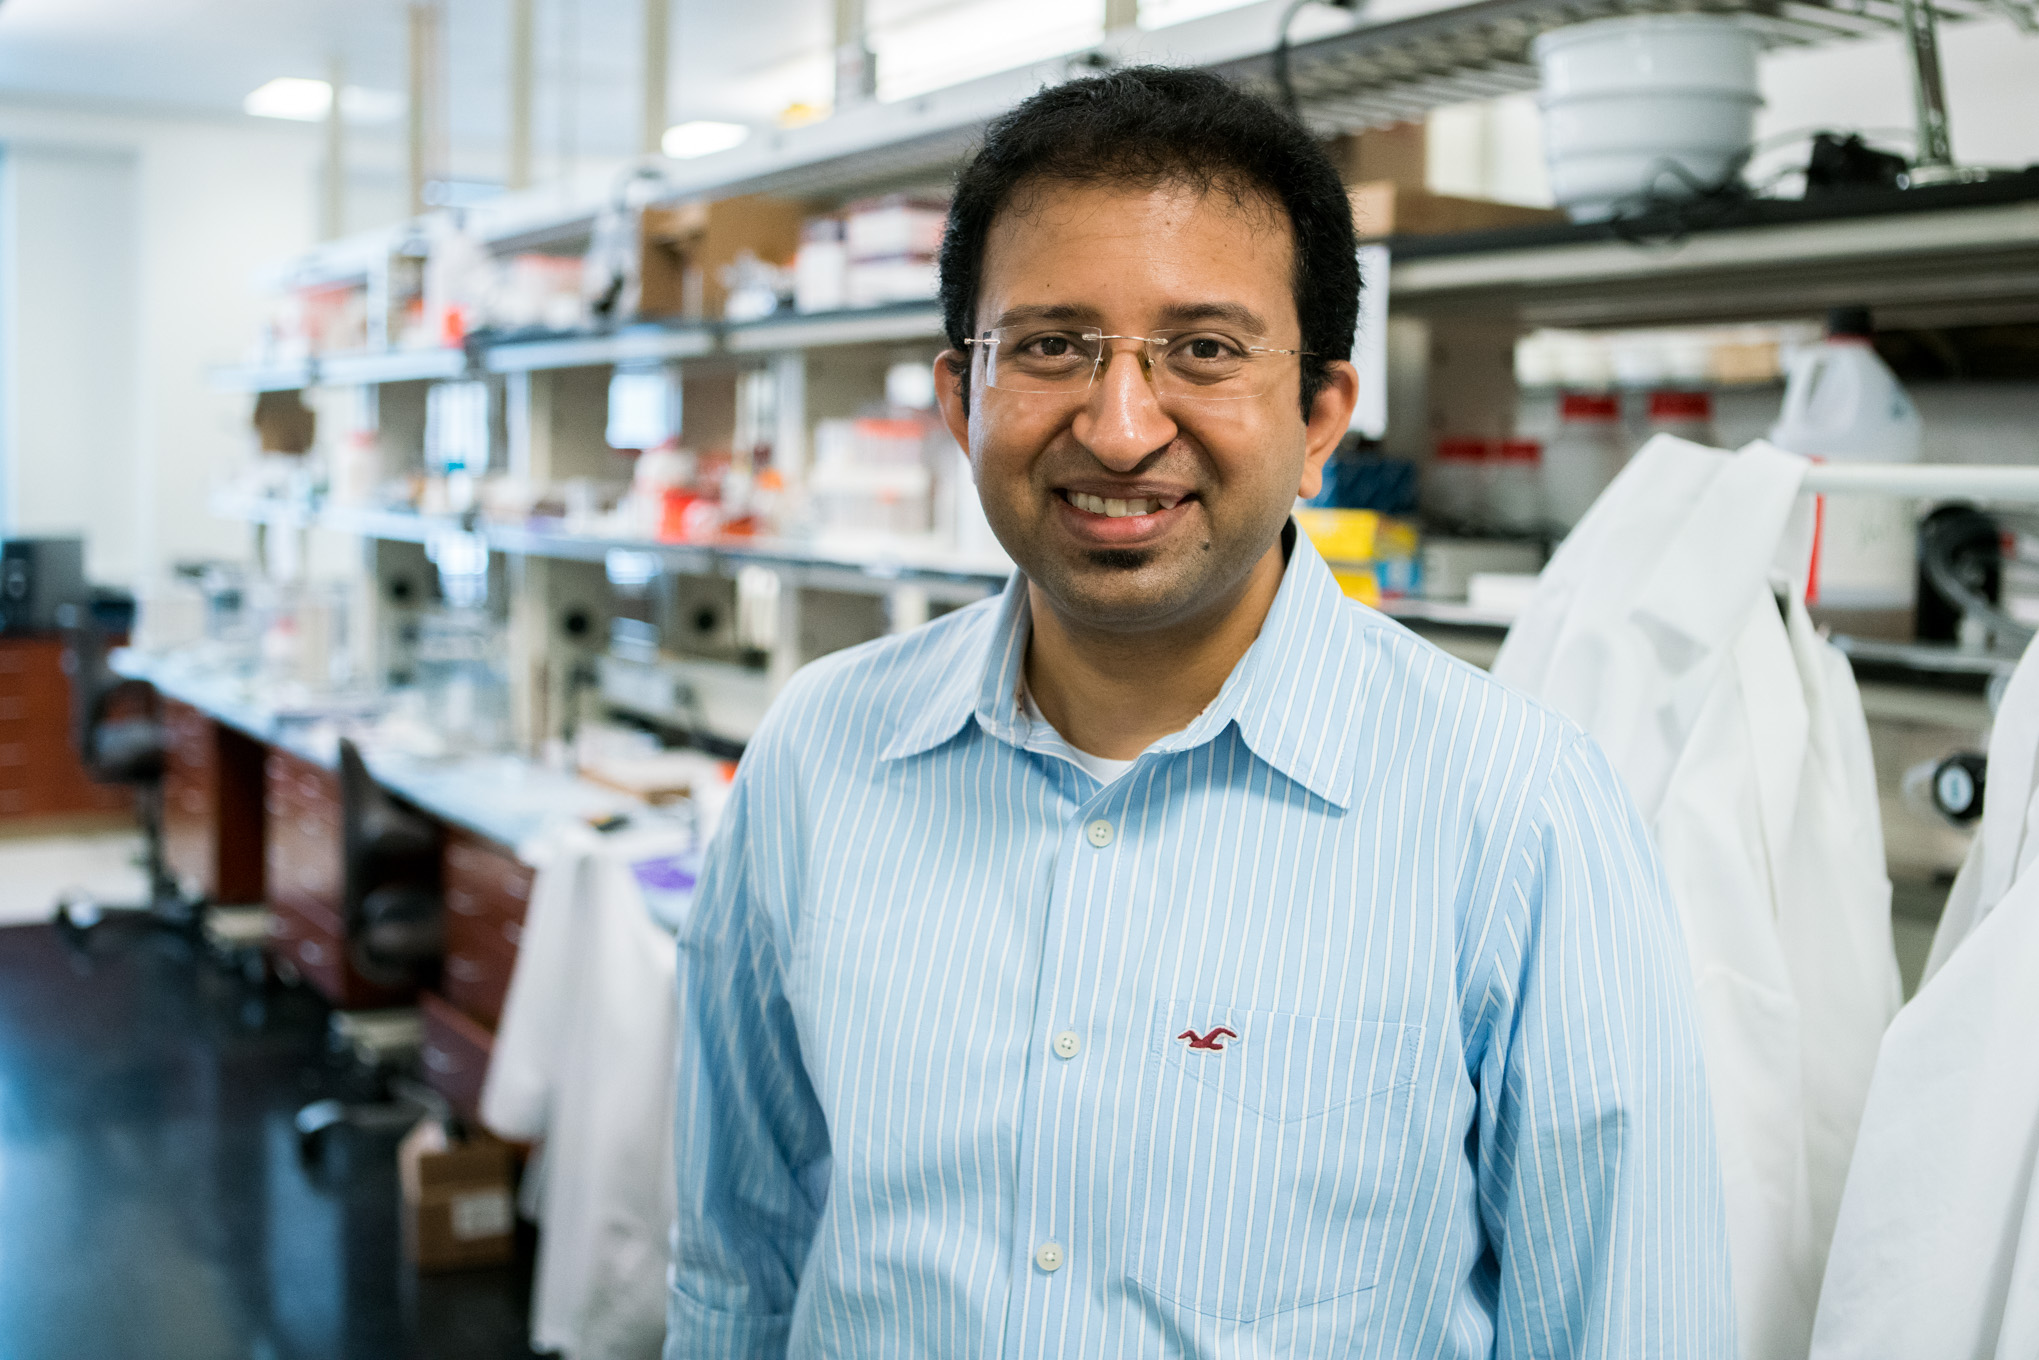 UTSA assistant professor of Biomedical Engineering Teja Guda, PhD. and his team are developing a special silk and cell solution to create bioprints. Photo by Kathryn Boyd-Batstone.